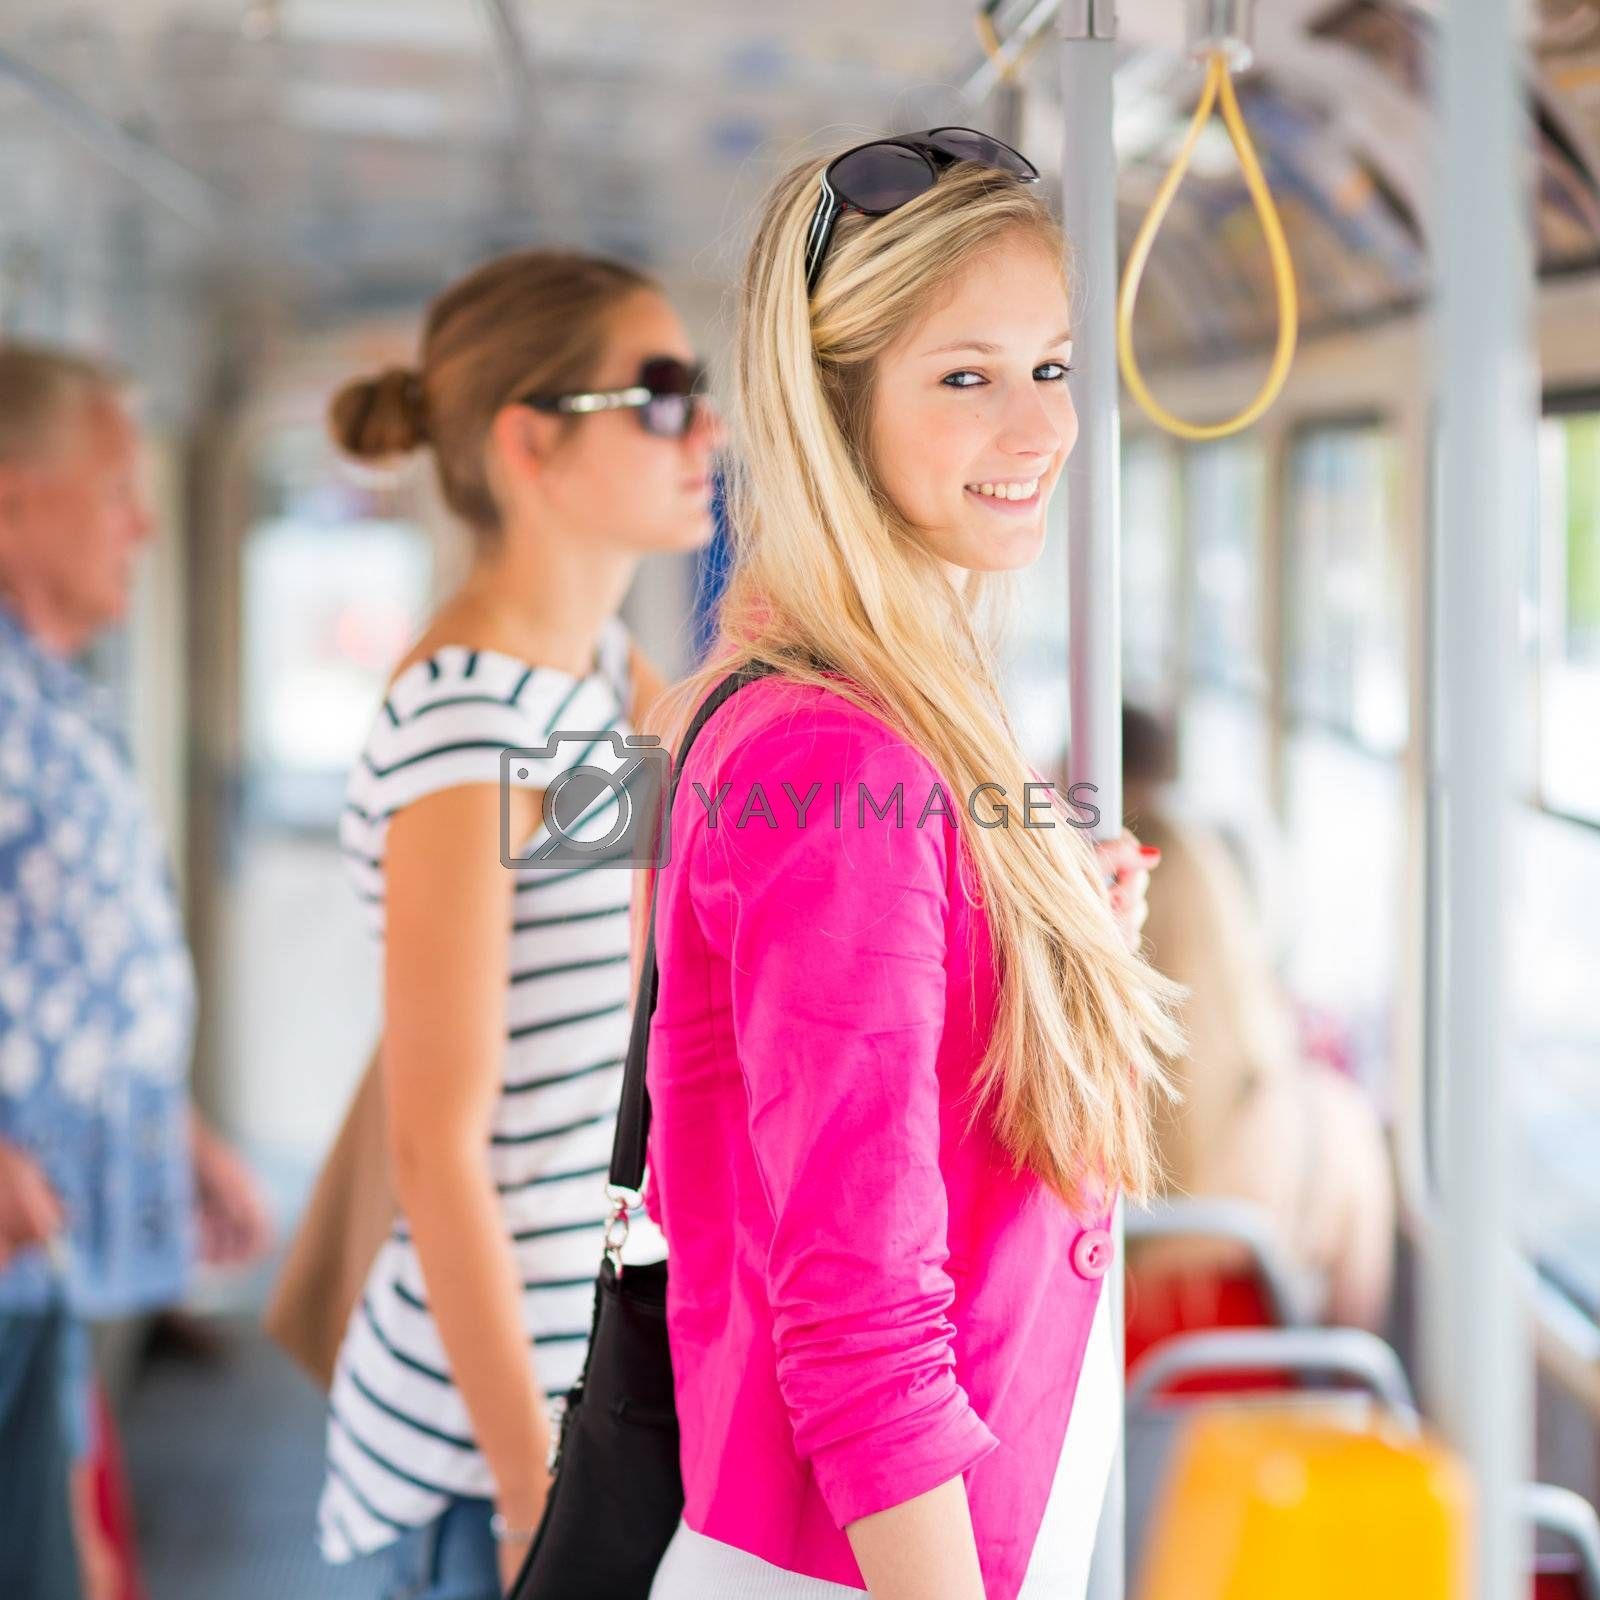 Pretty, young woman on a streetcar/tramway by Viktor Cap